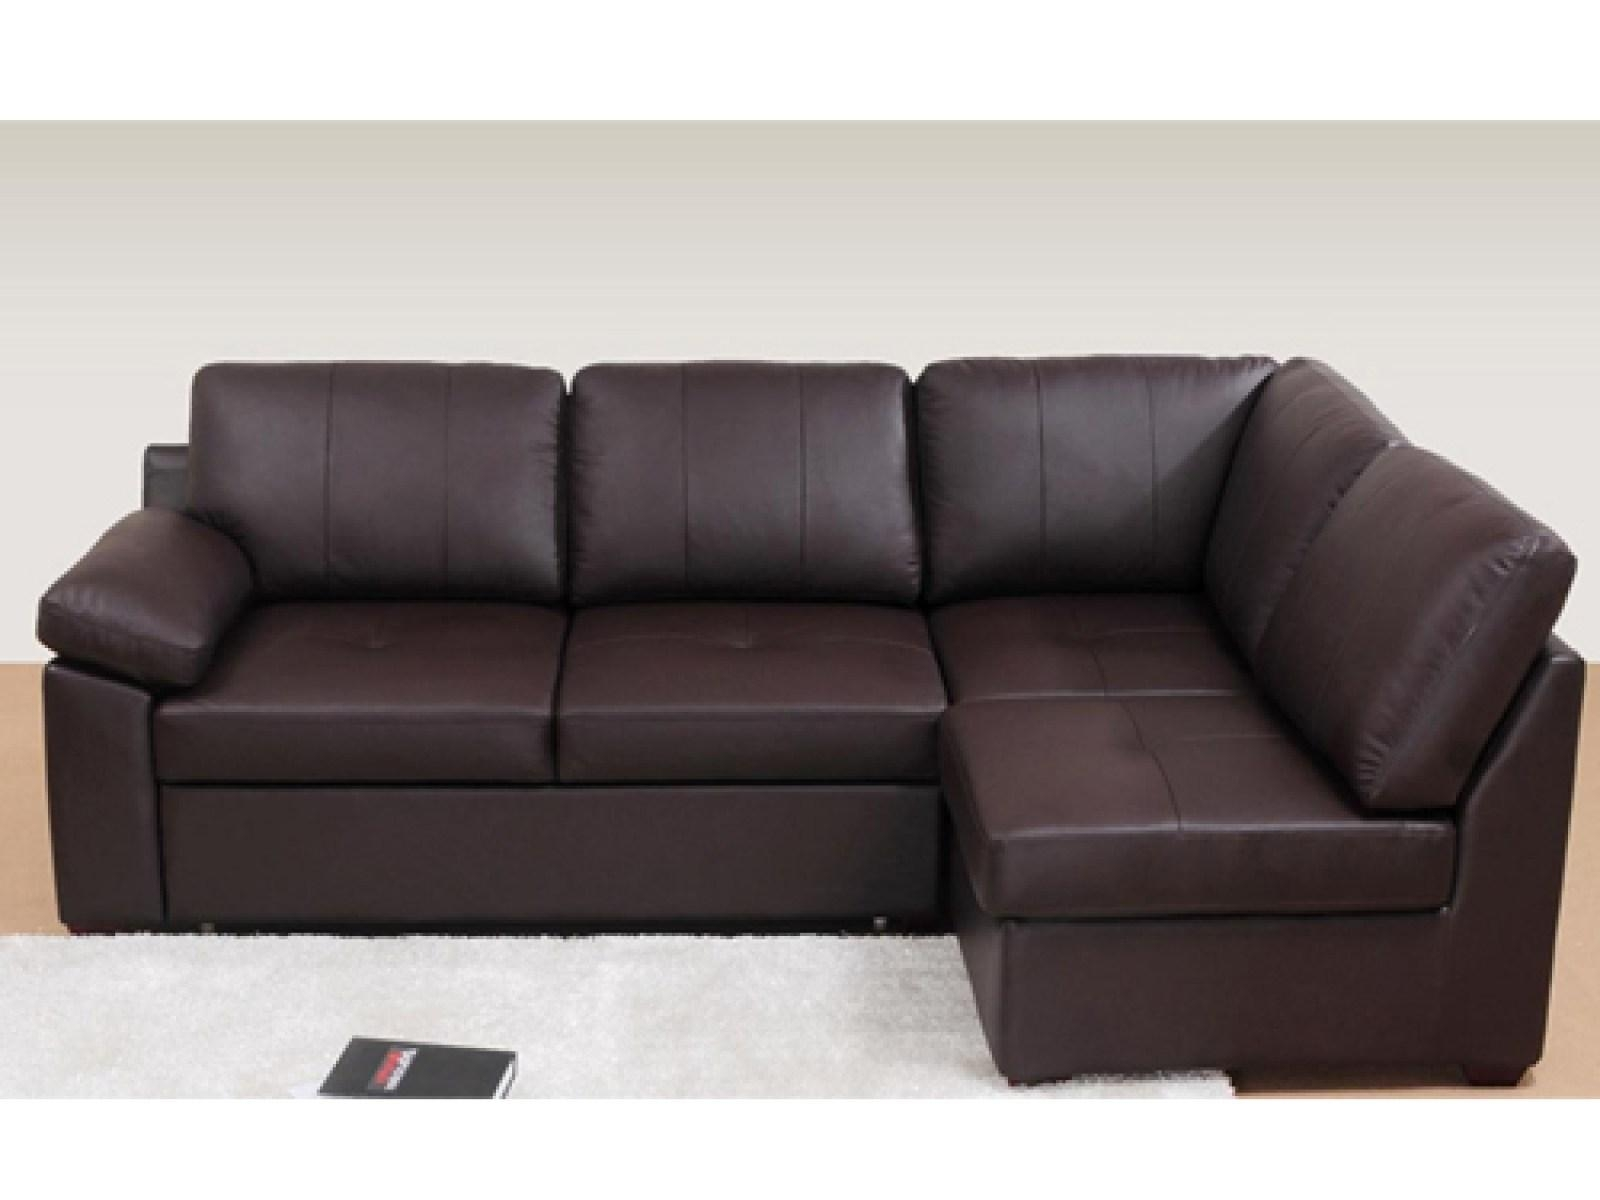 ▻ Sofa : 8 Leather Corner Sofa Bed Wonderful Leather Corner Sofa Intended For Leather Corner Sofa Bed (Image 1 of 20)